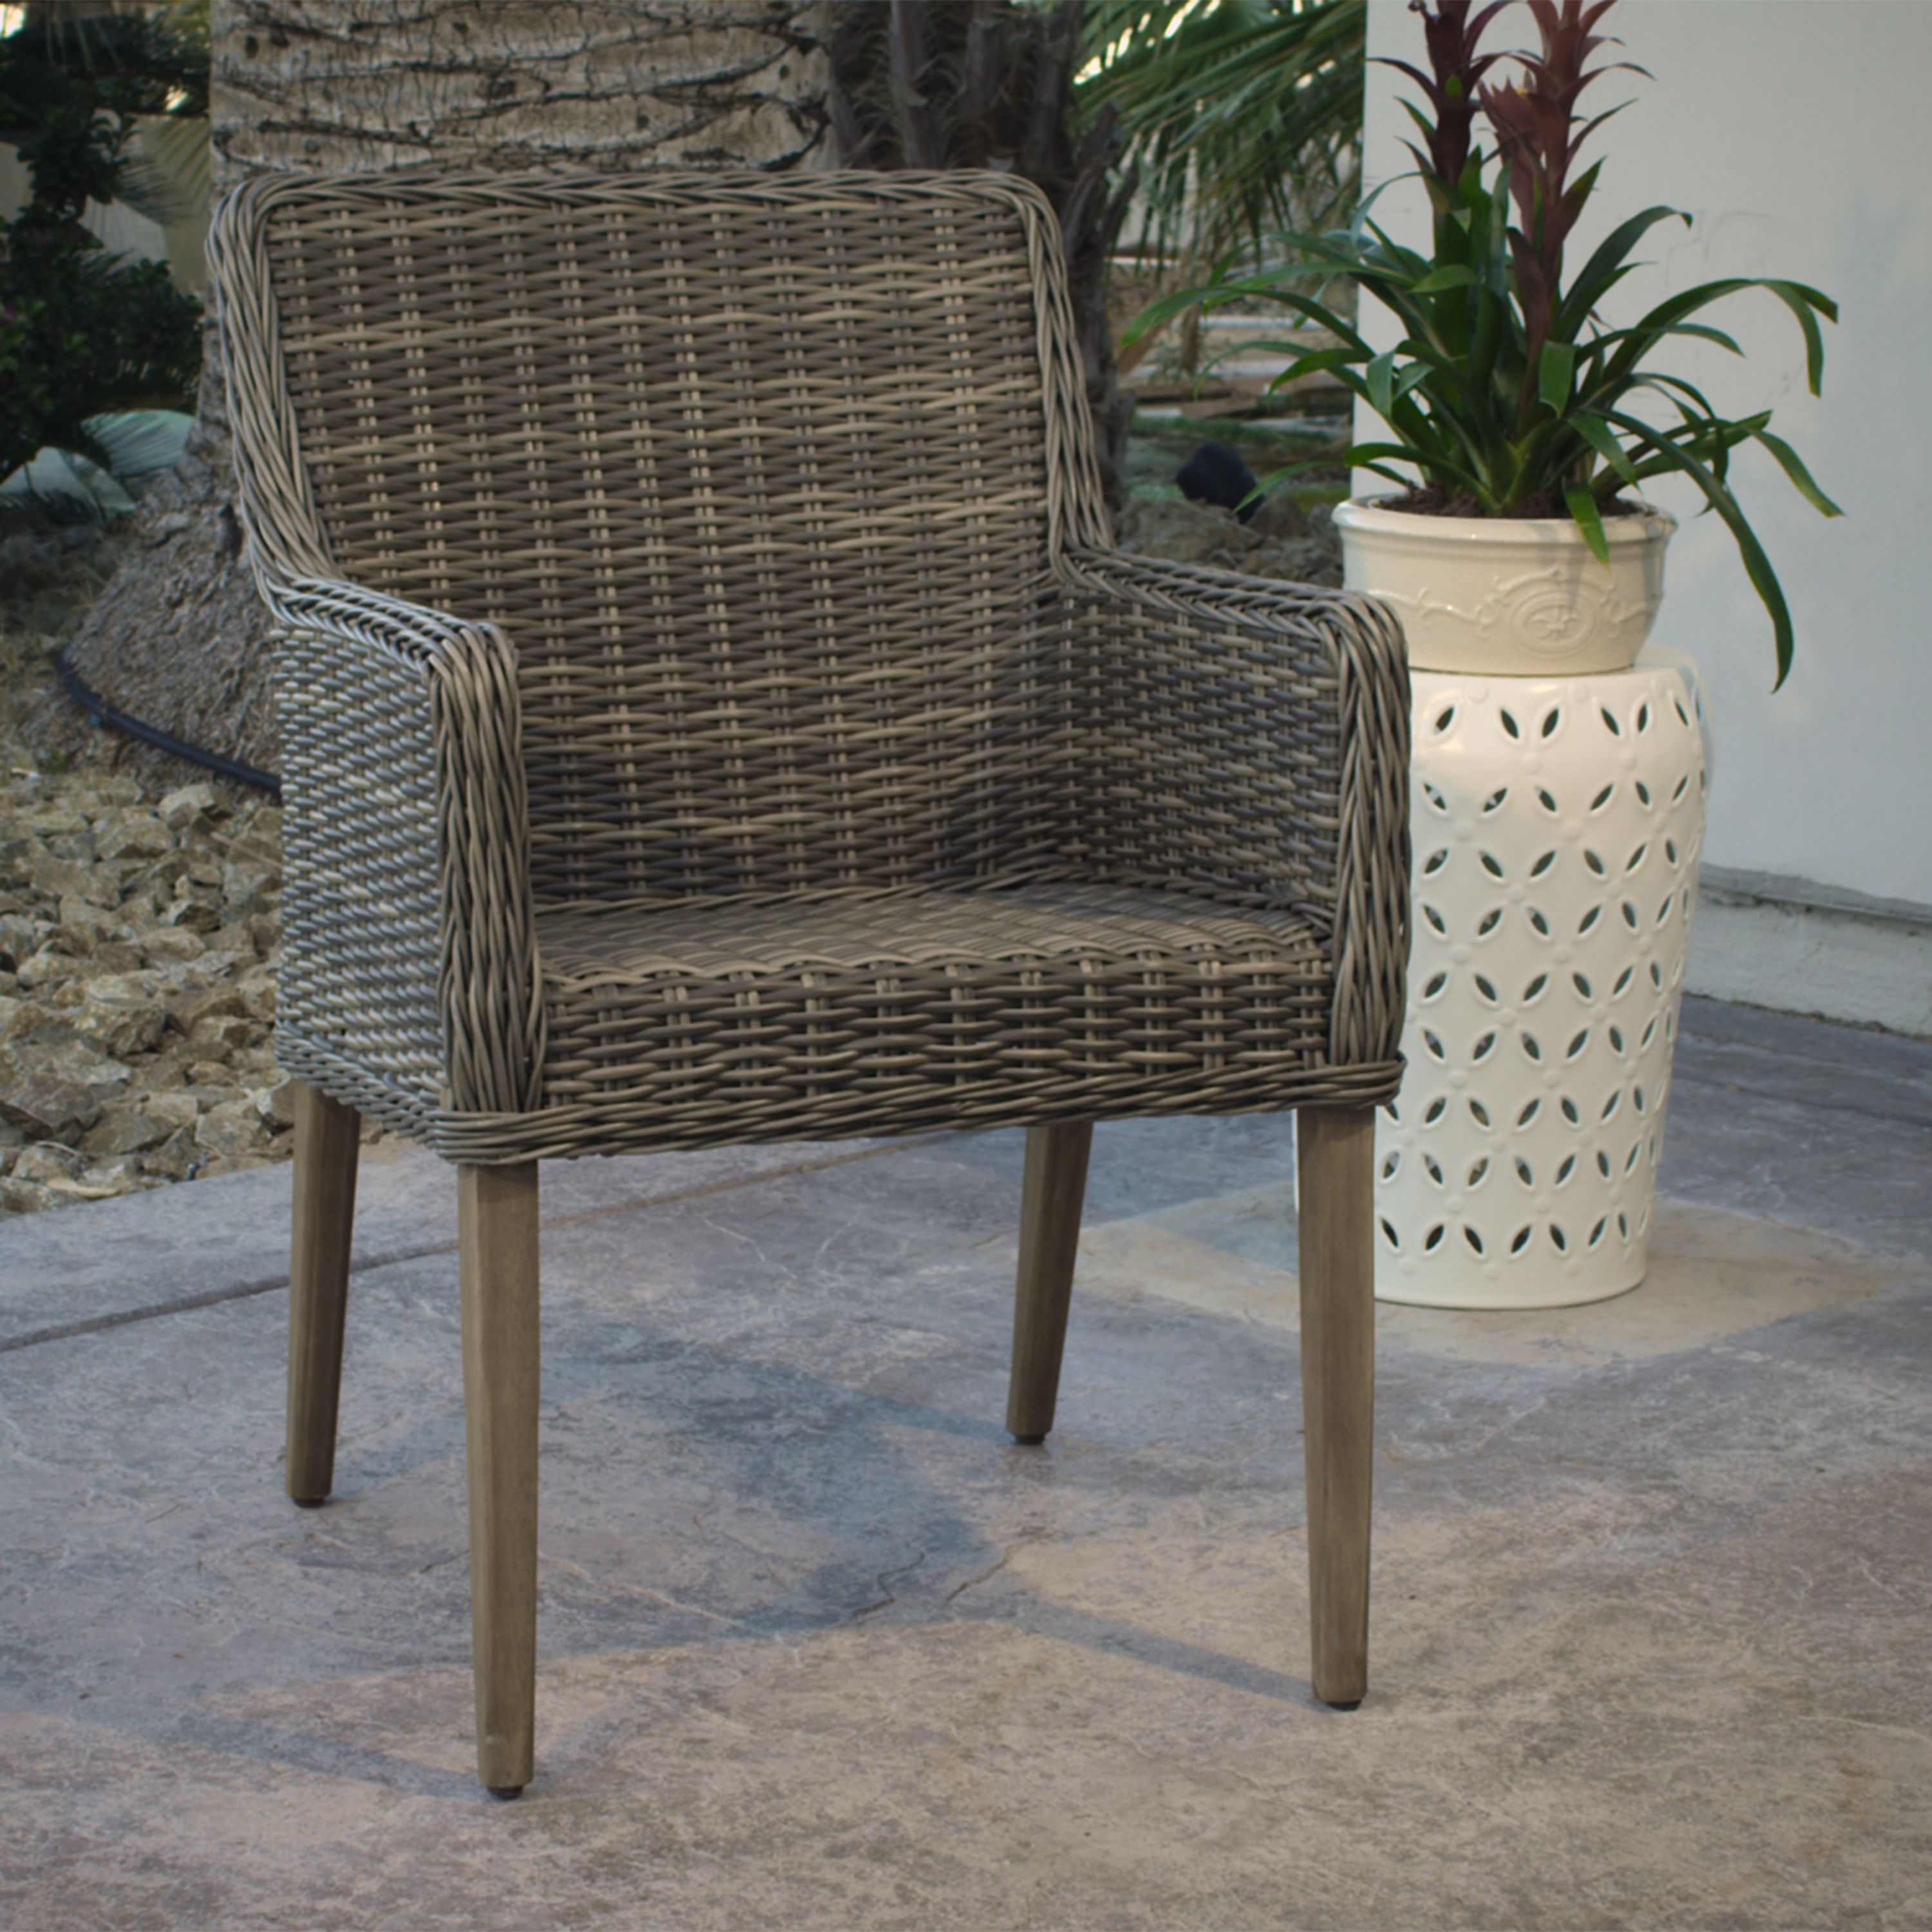 Gray all weather wicker outdoor dining chair